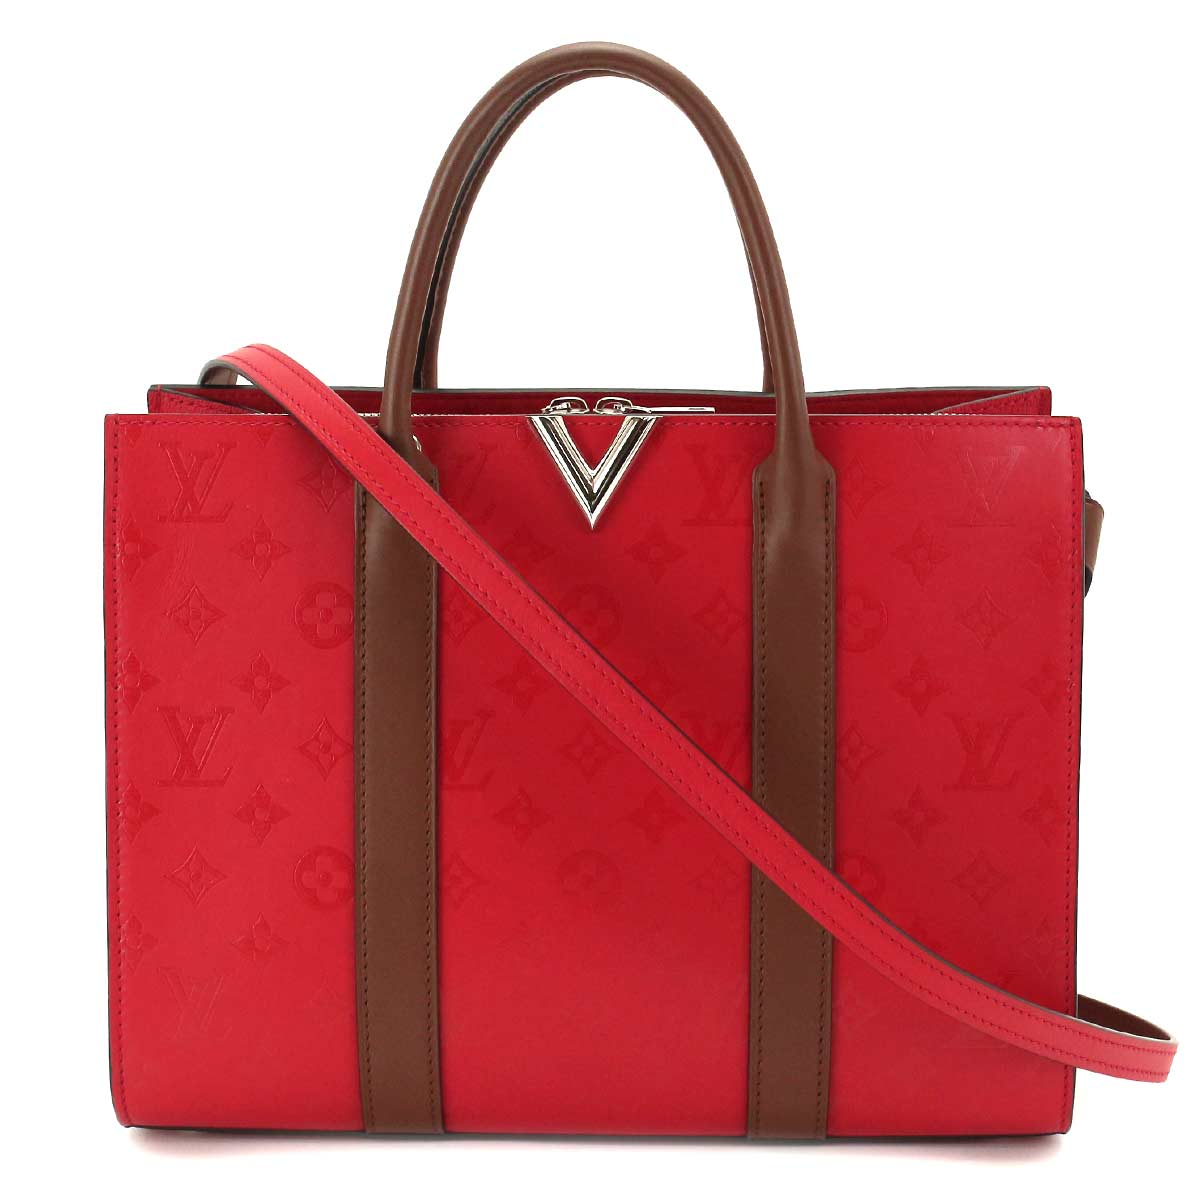 dd4c416af096 LOUIS VUITTON Very Tote 2WAY Shoulder Bag Ruby Leather M42889 ...